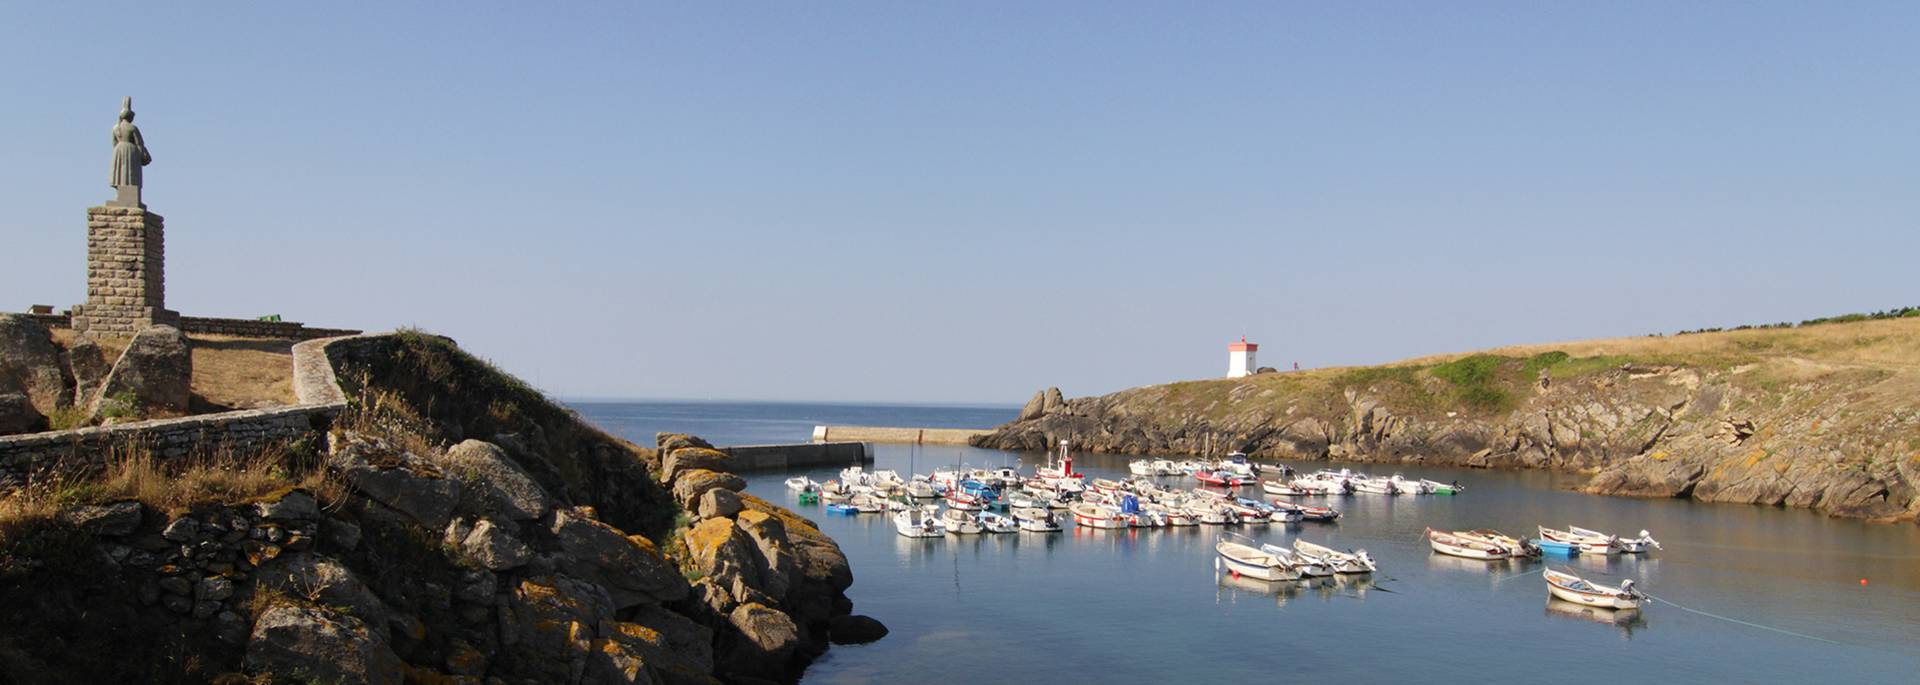 The little harbour of Pors Poulhan © OTHPB